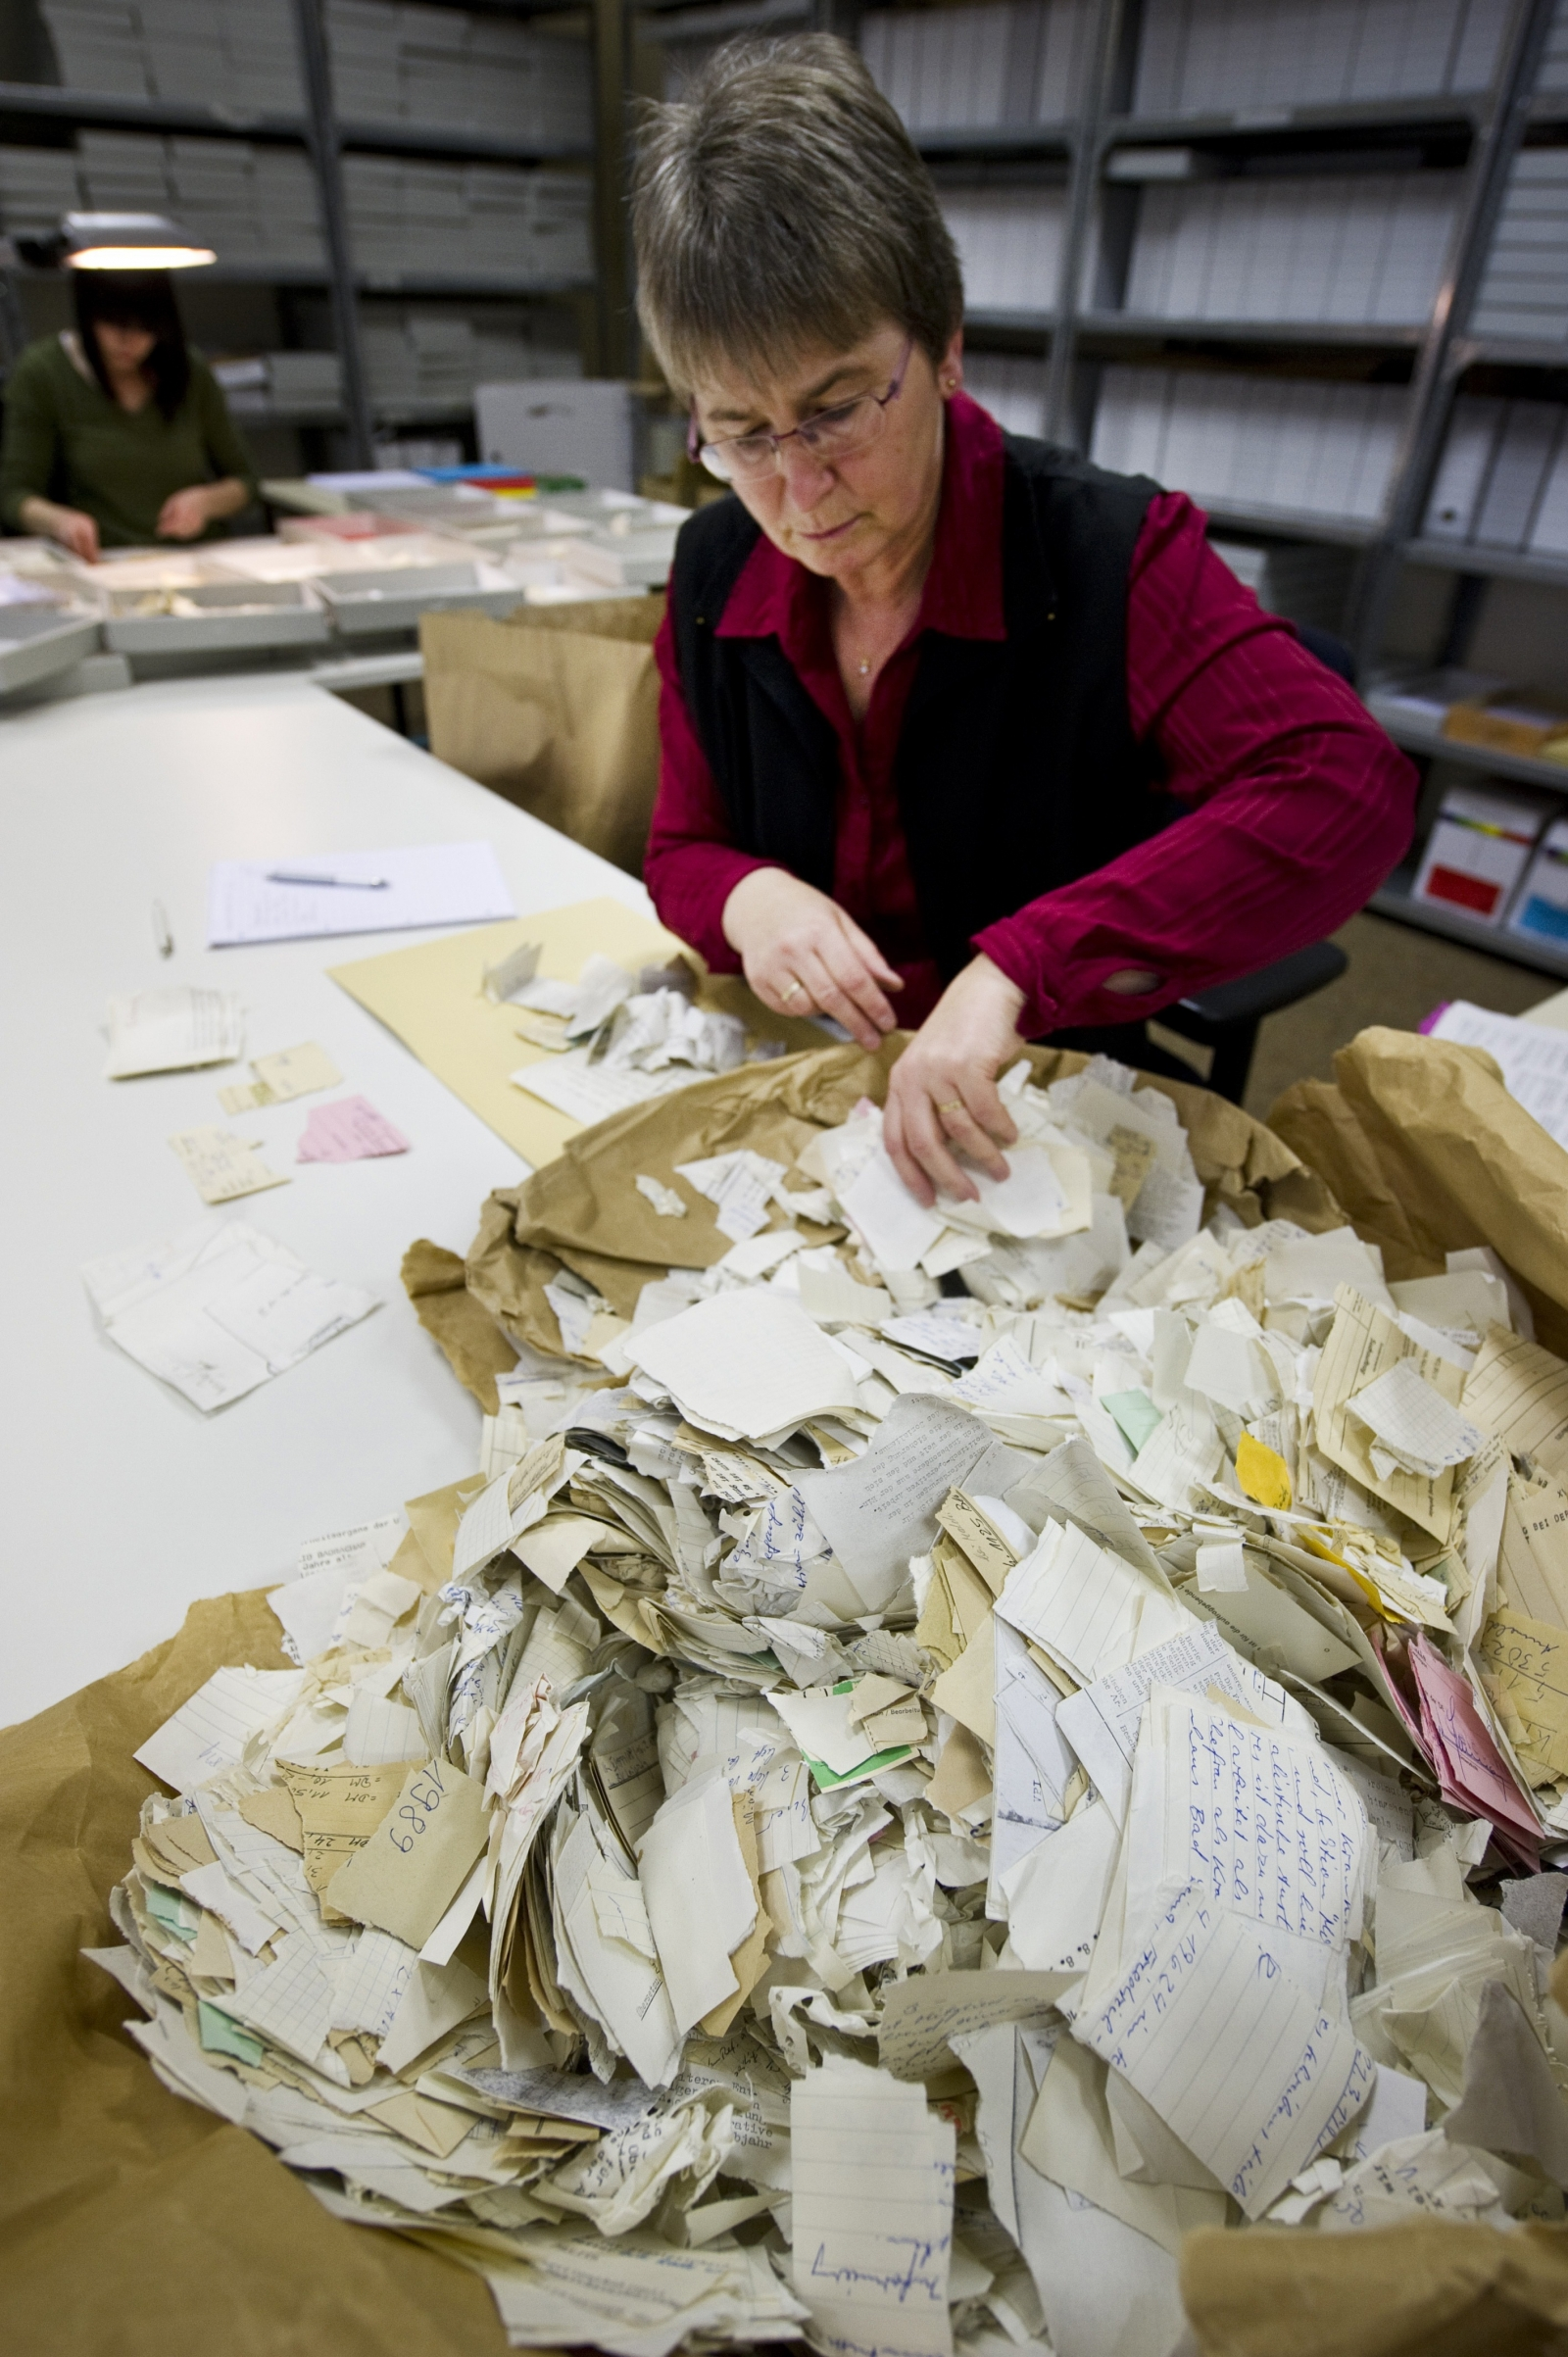 Stasi files restoration